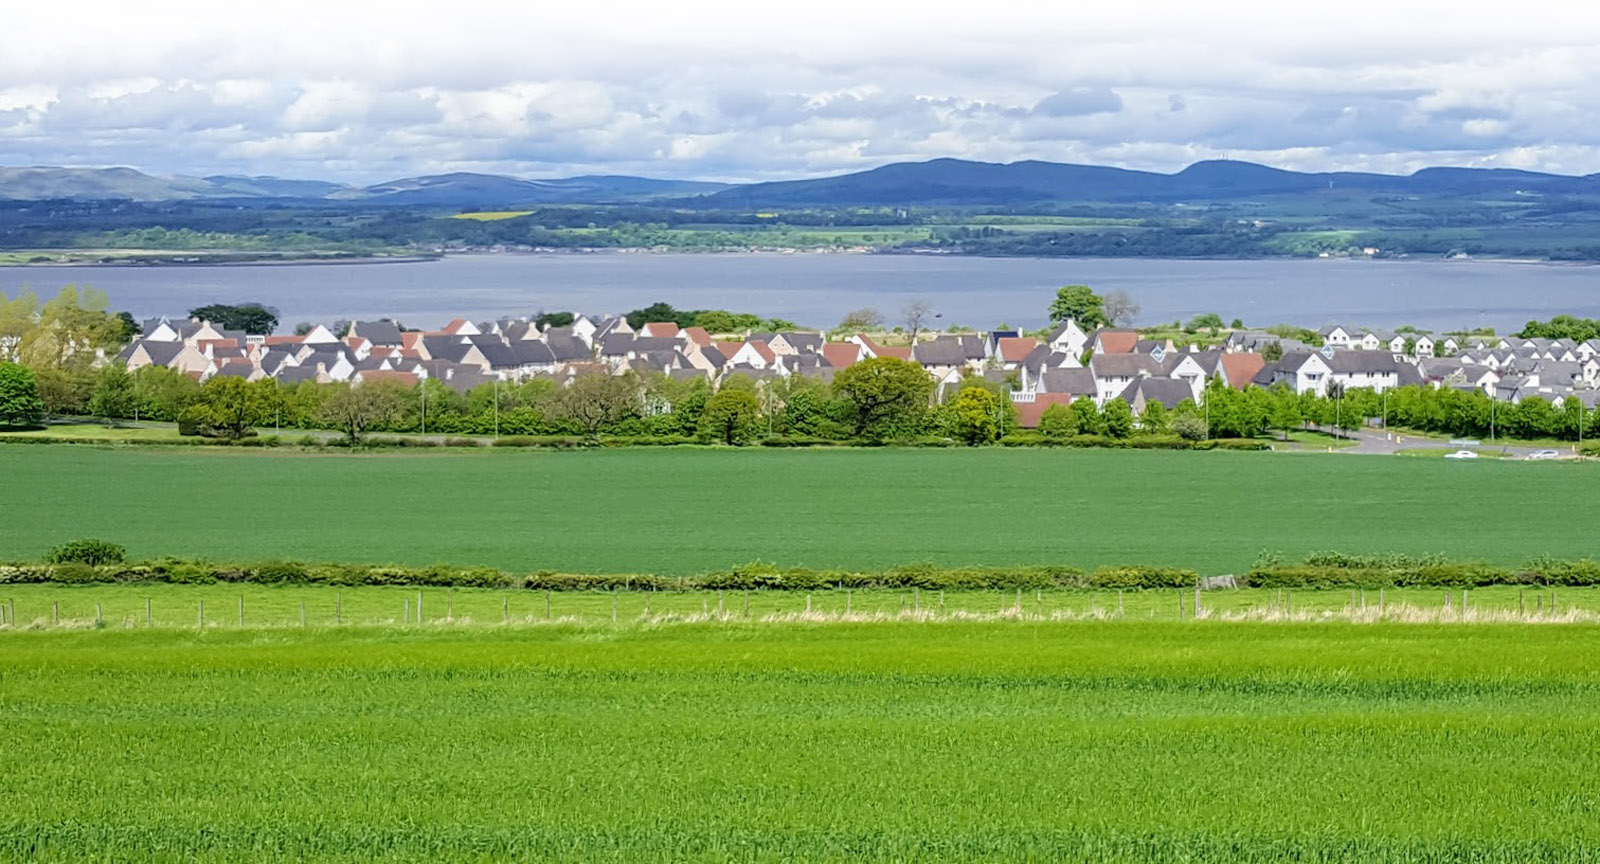 The view from the south of Bo'ness across the Forth to Fife.